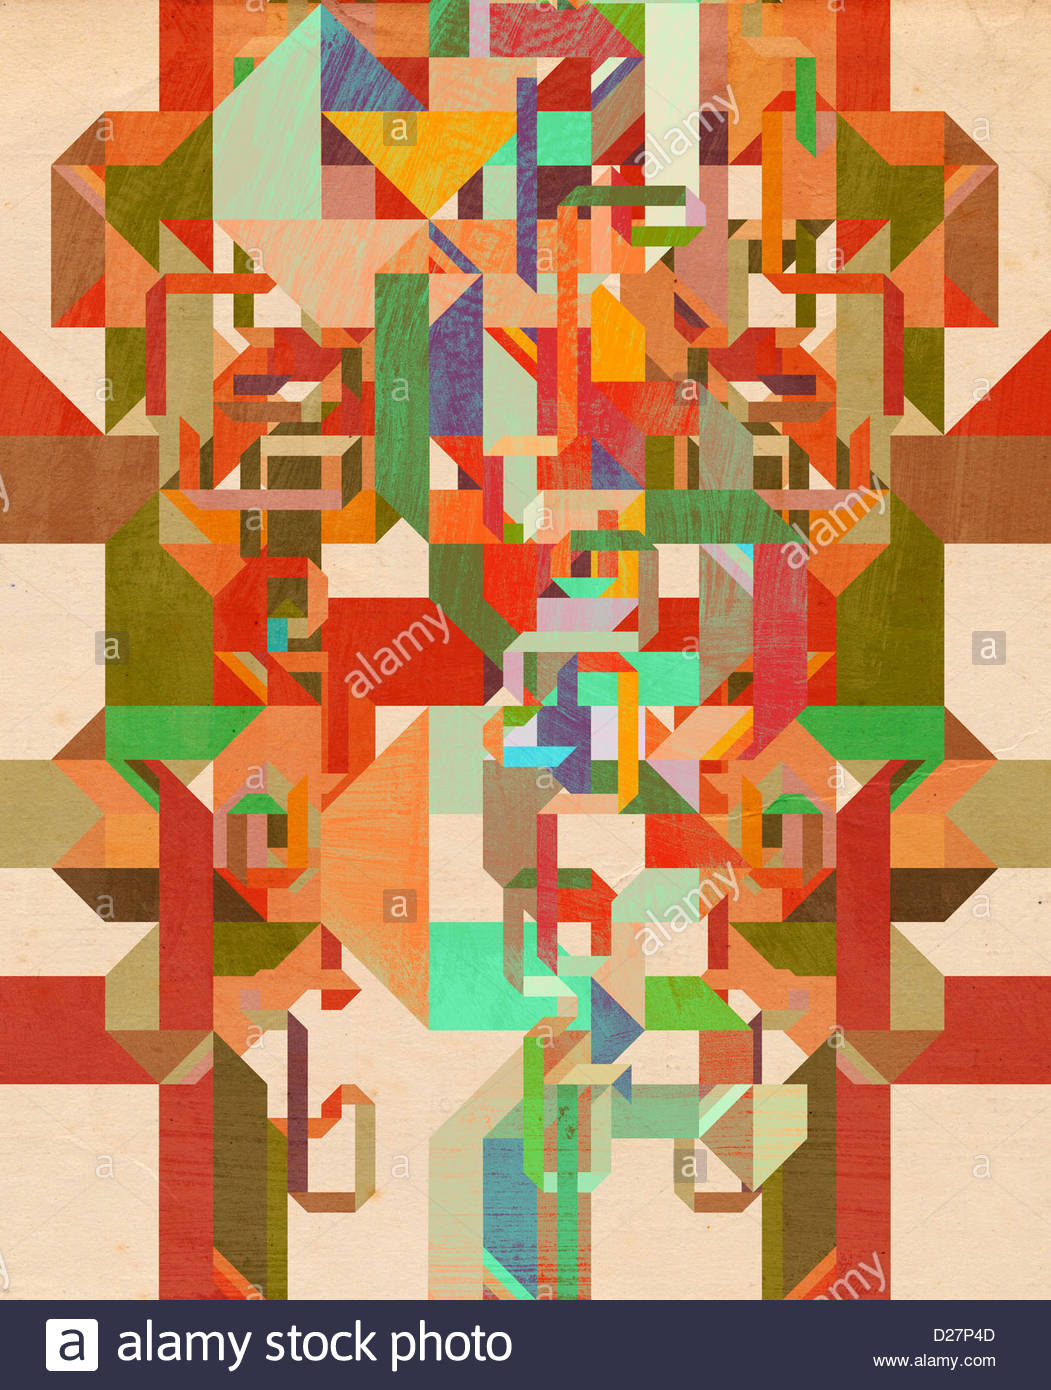 Multicolored geometric abstract - Stock Image